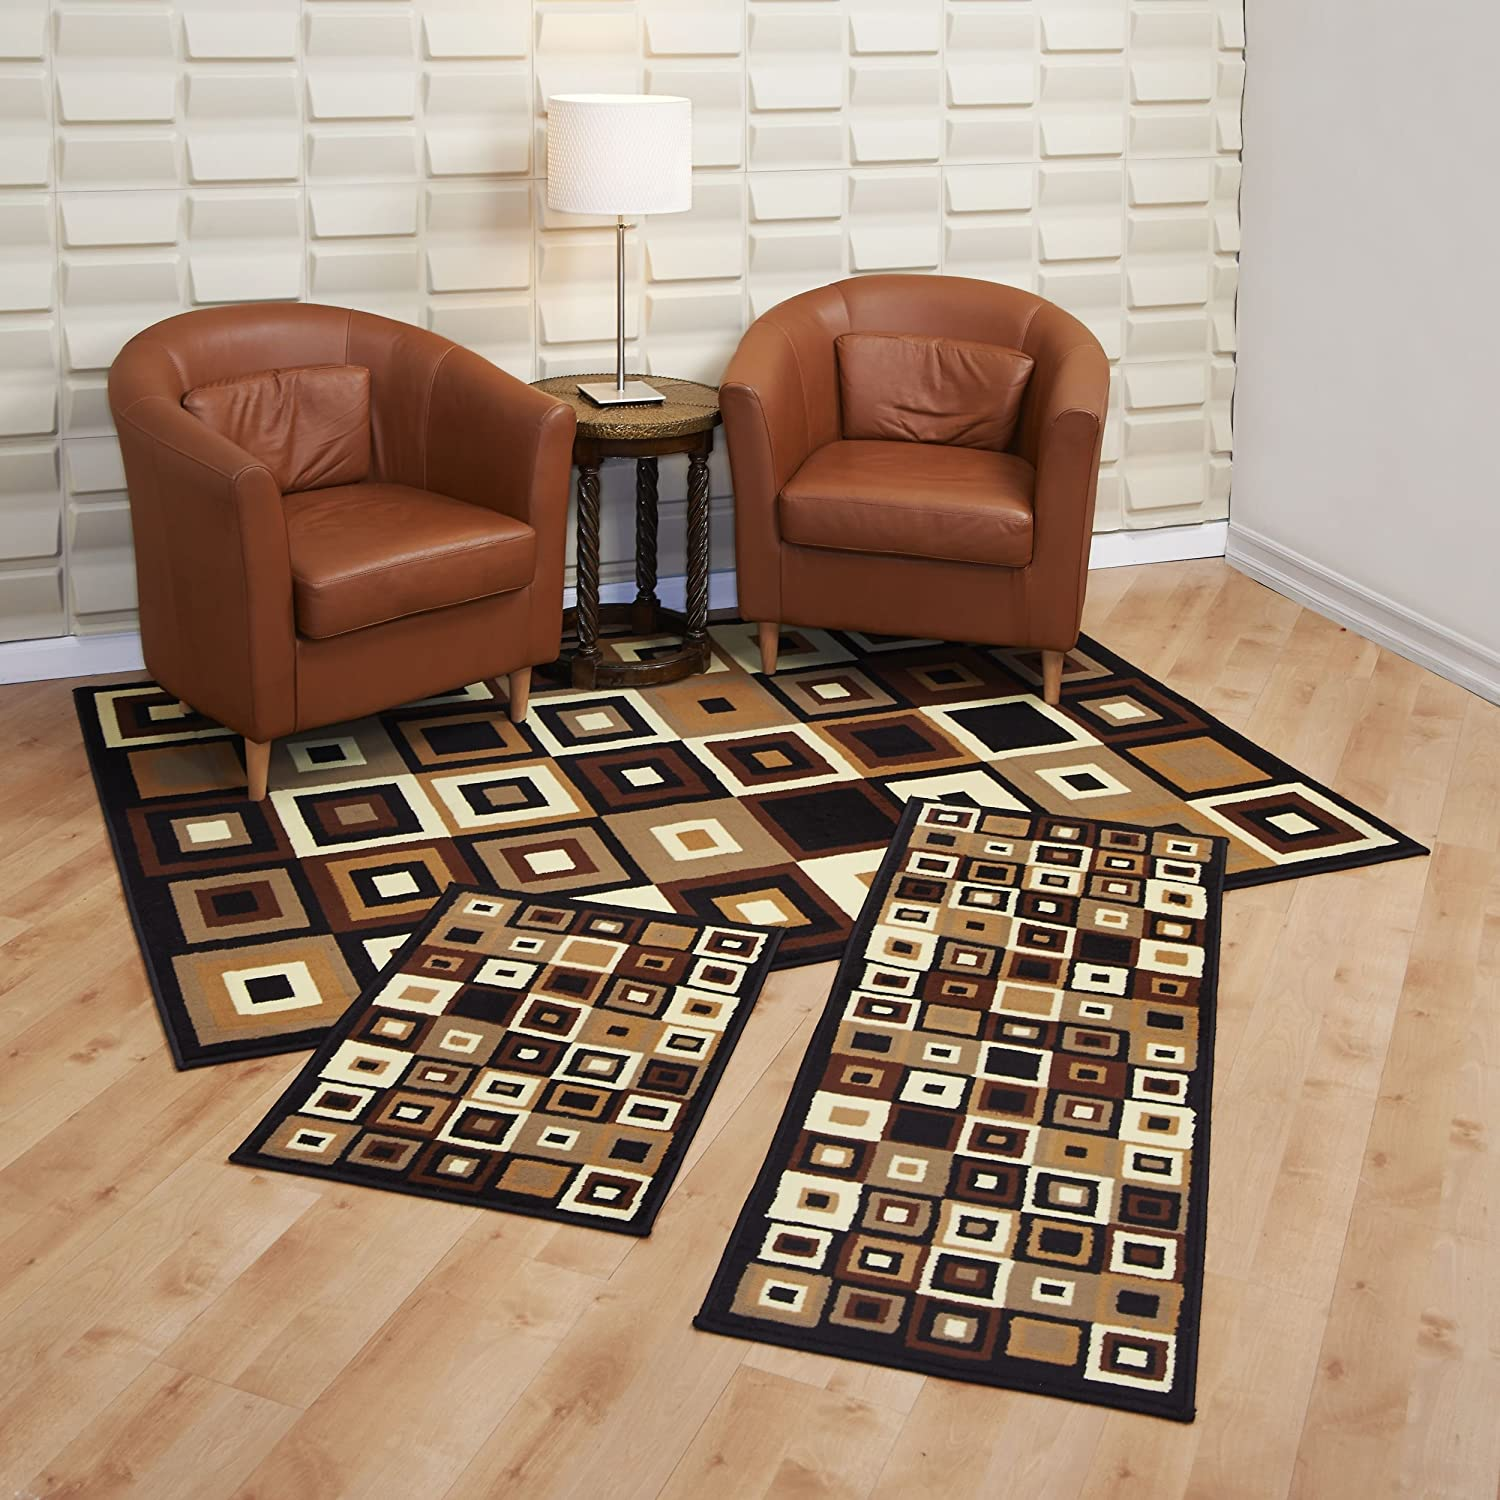 Achim Home Furnishings Capri Rug Set, 3-Piece, Southwest Tiles Achim Imports 5444/373-I